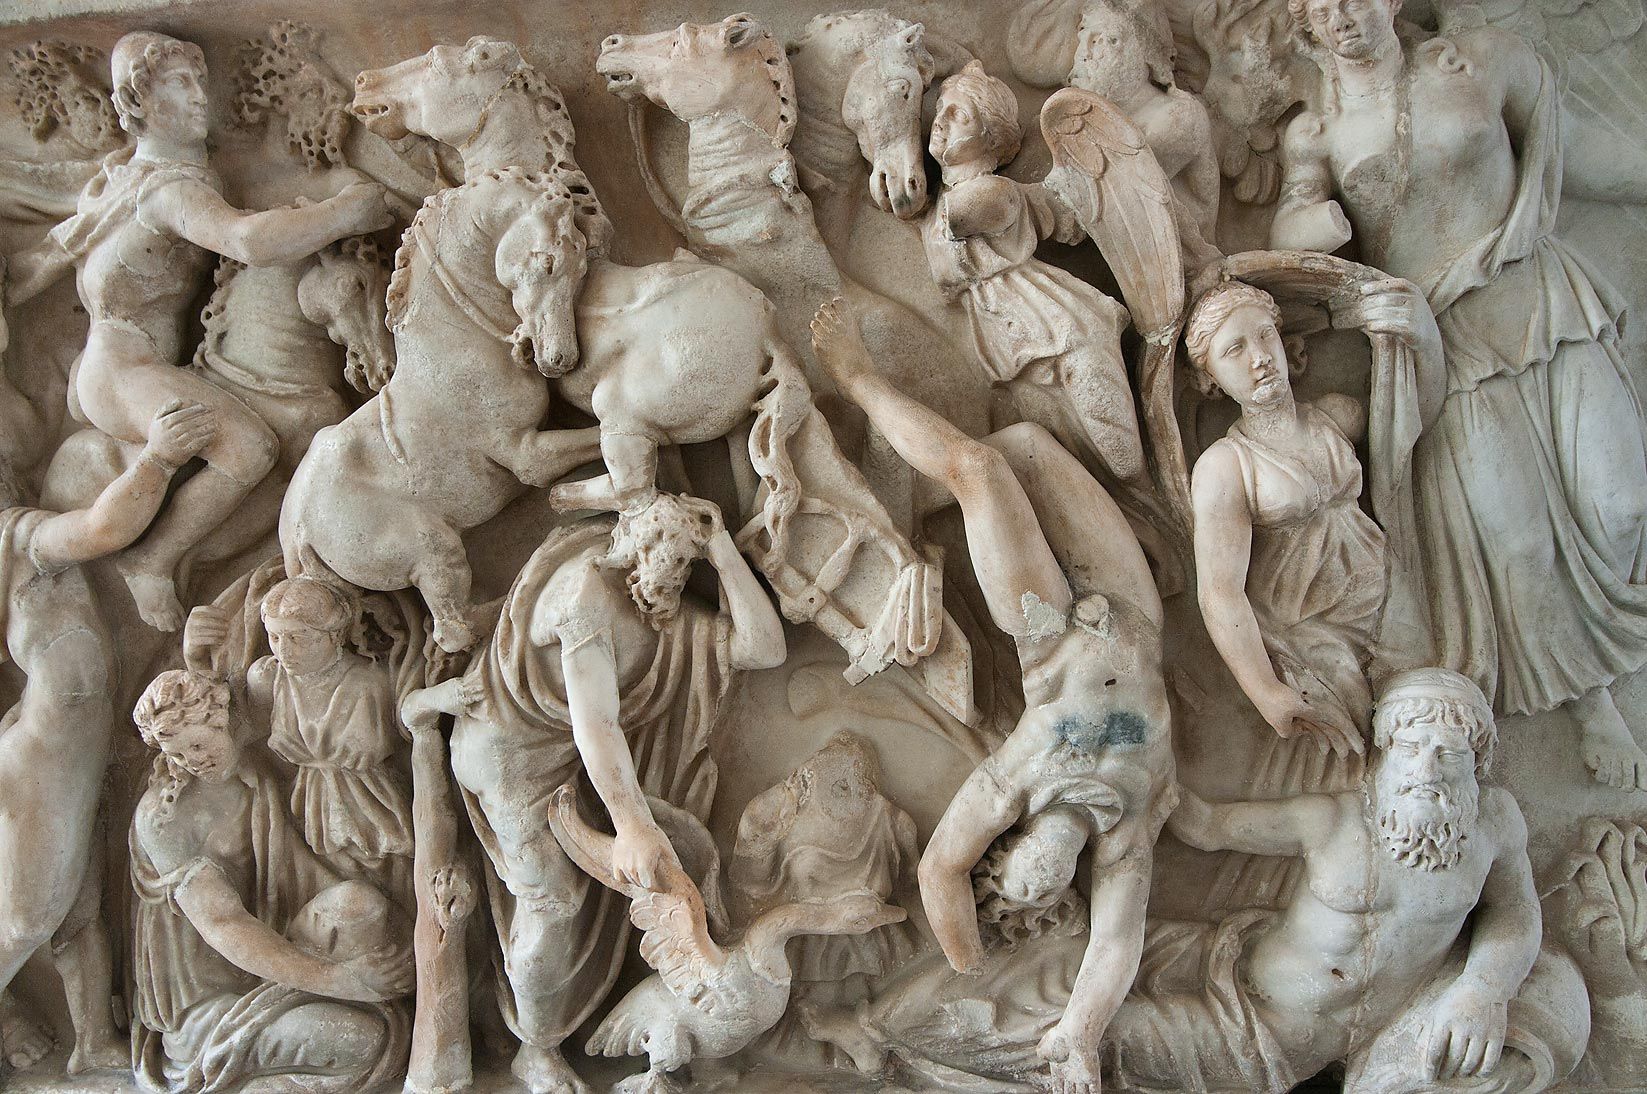 Marble relief on sarcophagus showing traffic jam...Museum. St.Petersburg, Russia